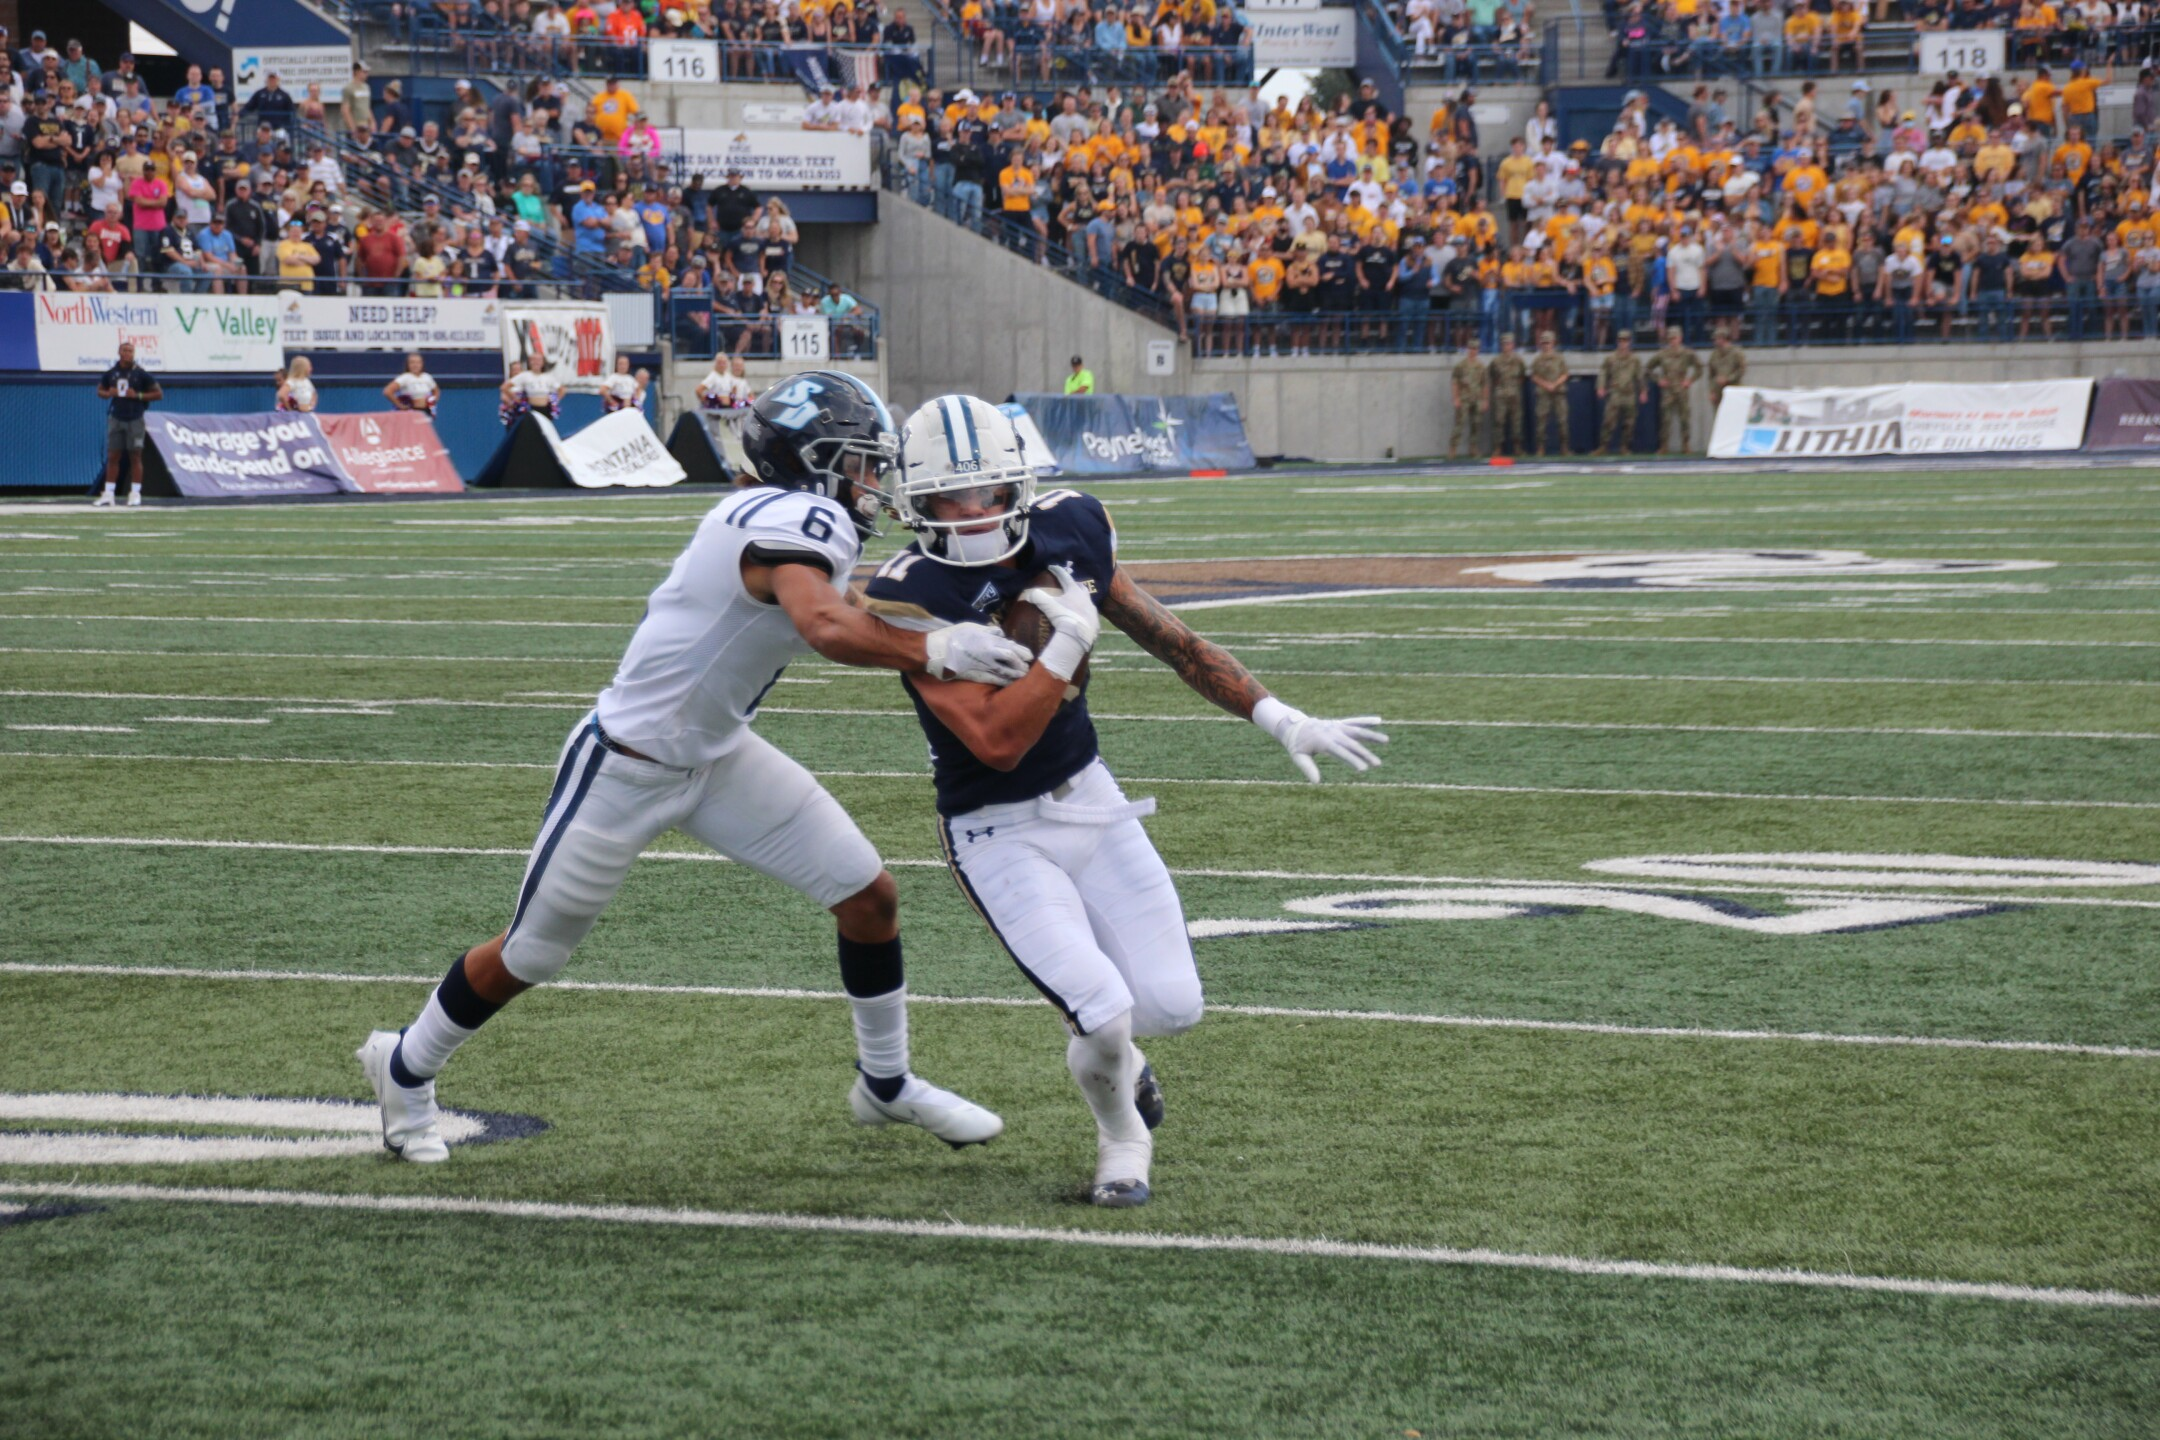 MSU WR Willie Patterson makes a catch in the first half